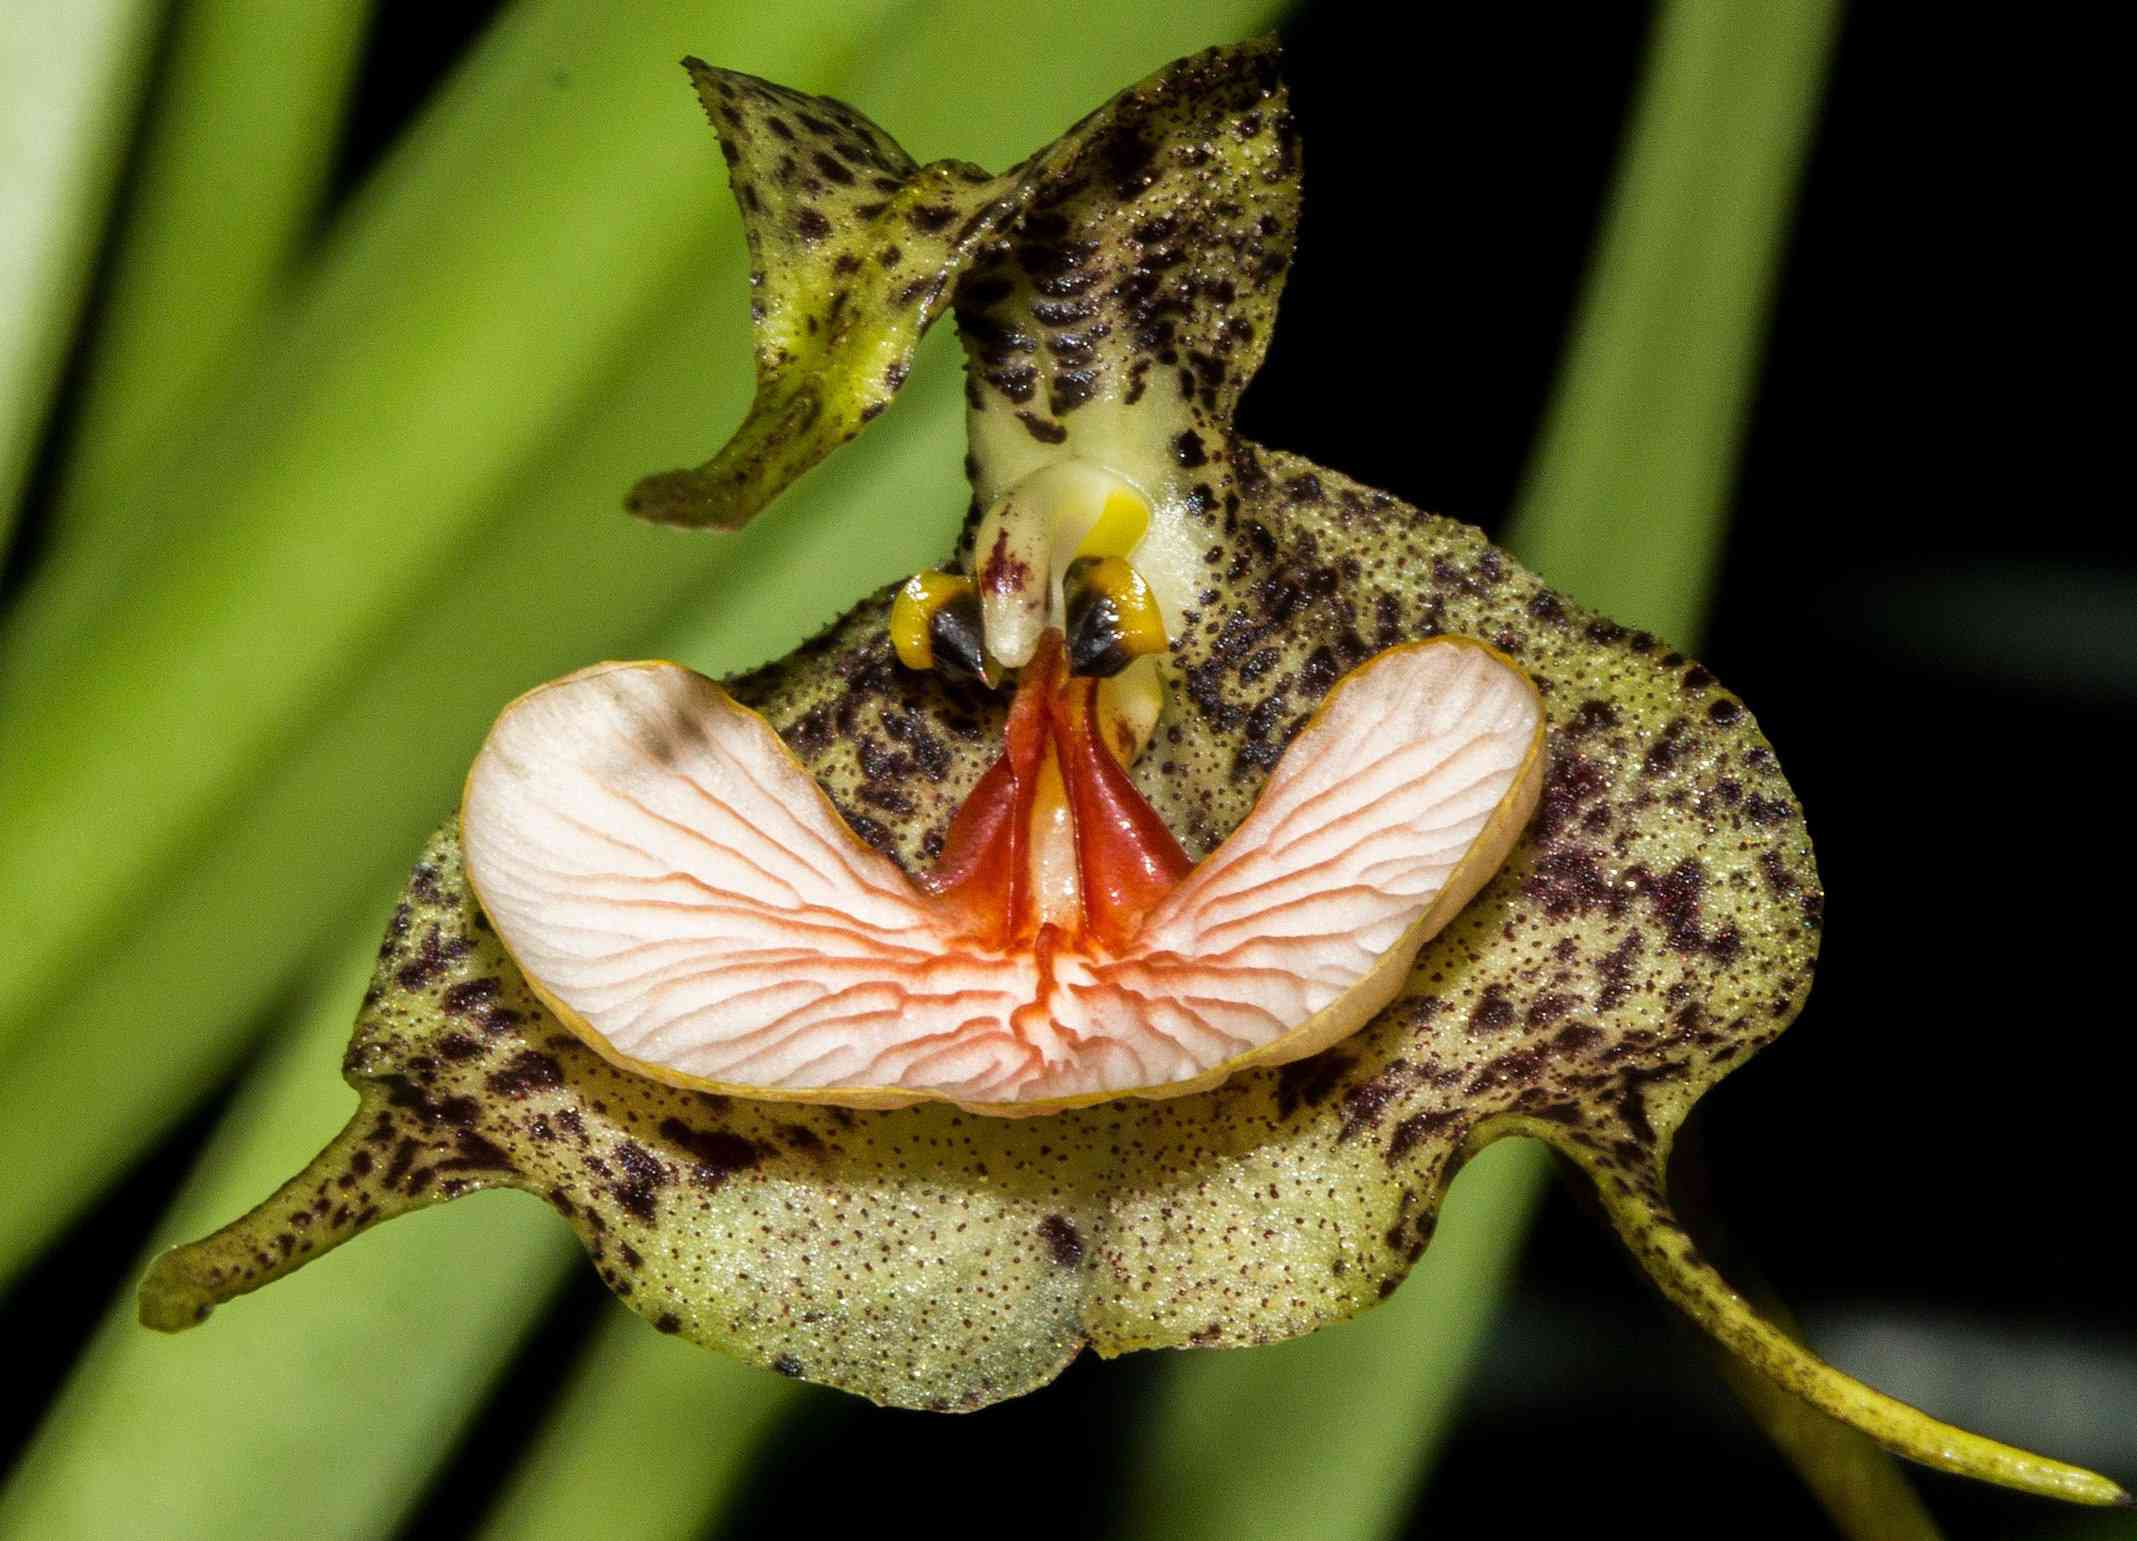 close up of orchid Dracula chestertonii, which looks like it has two black eyes and a wide white tongue lined with red veins, the petals yellow with brown spots